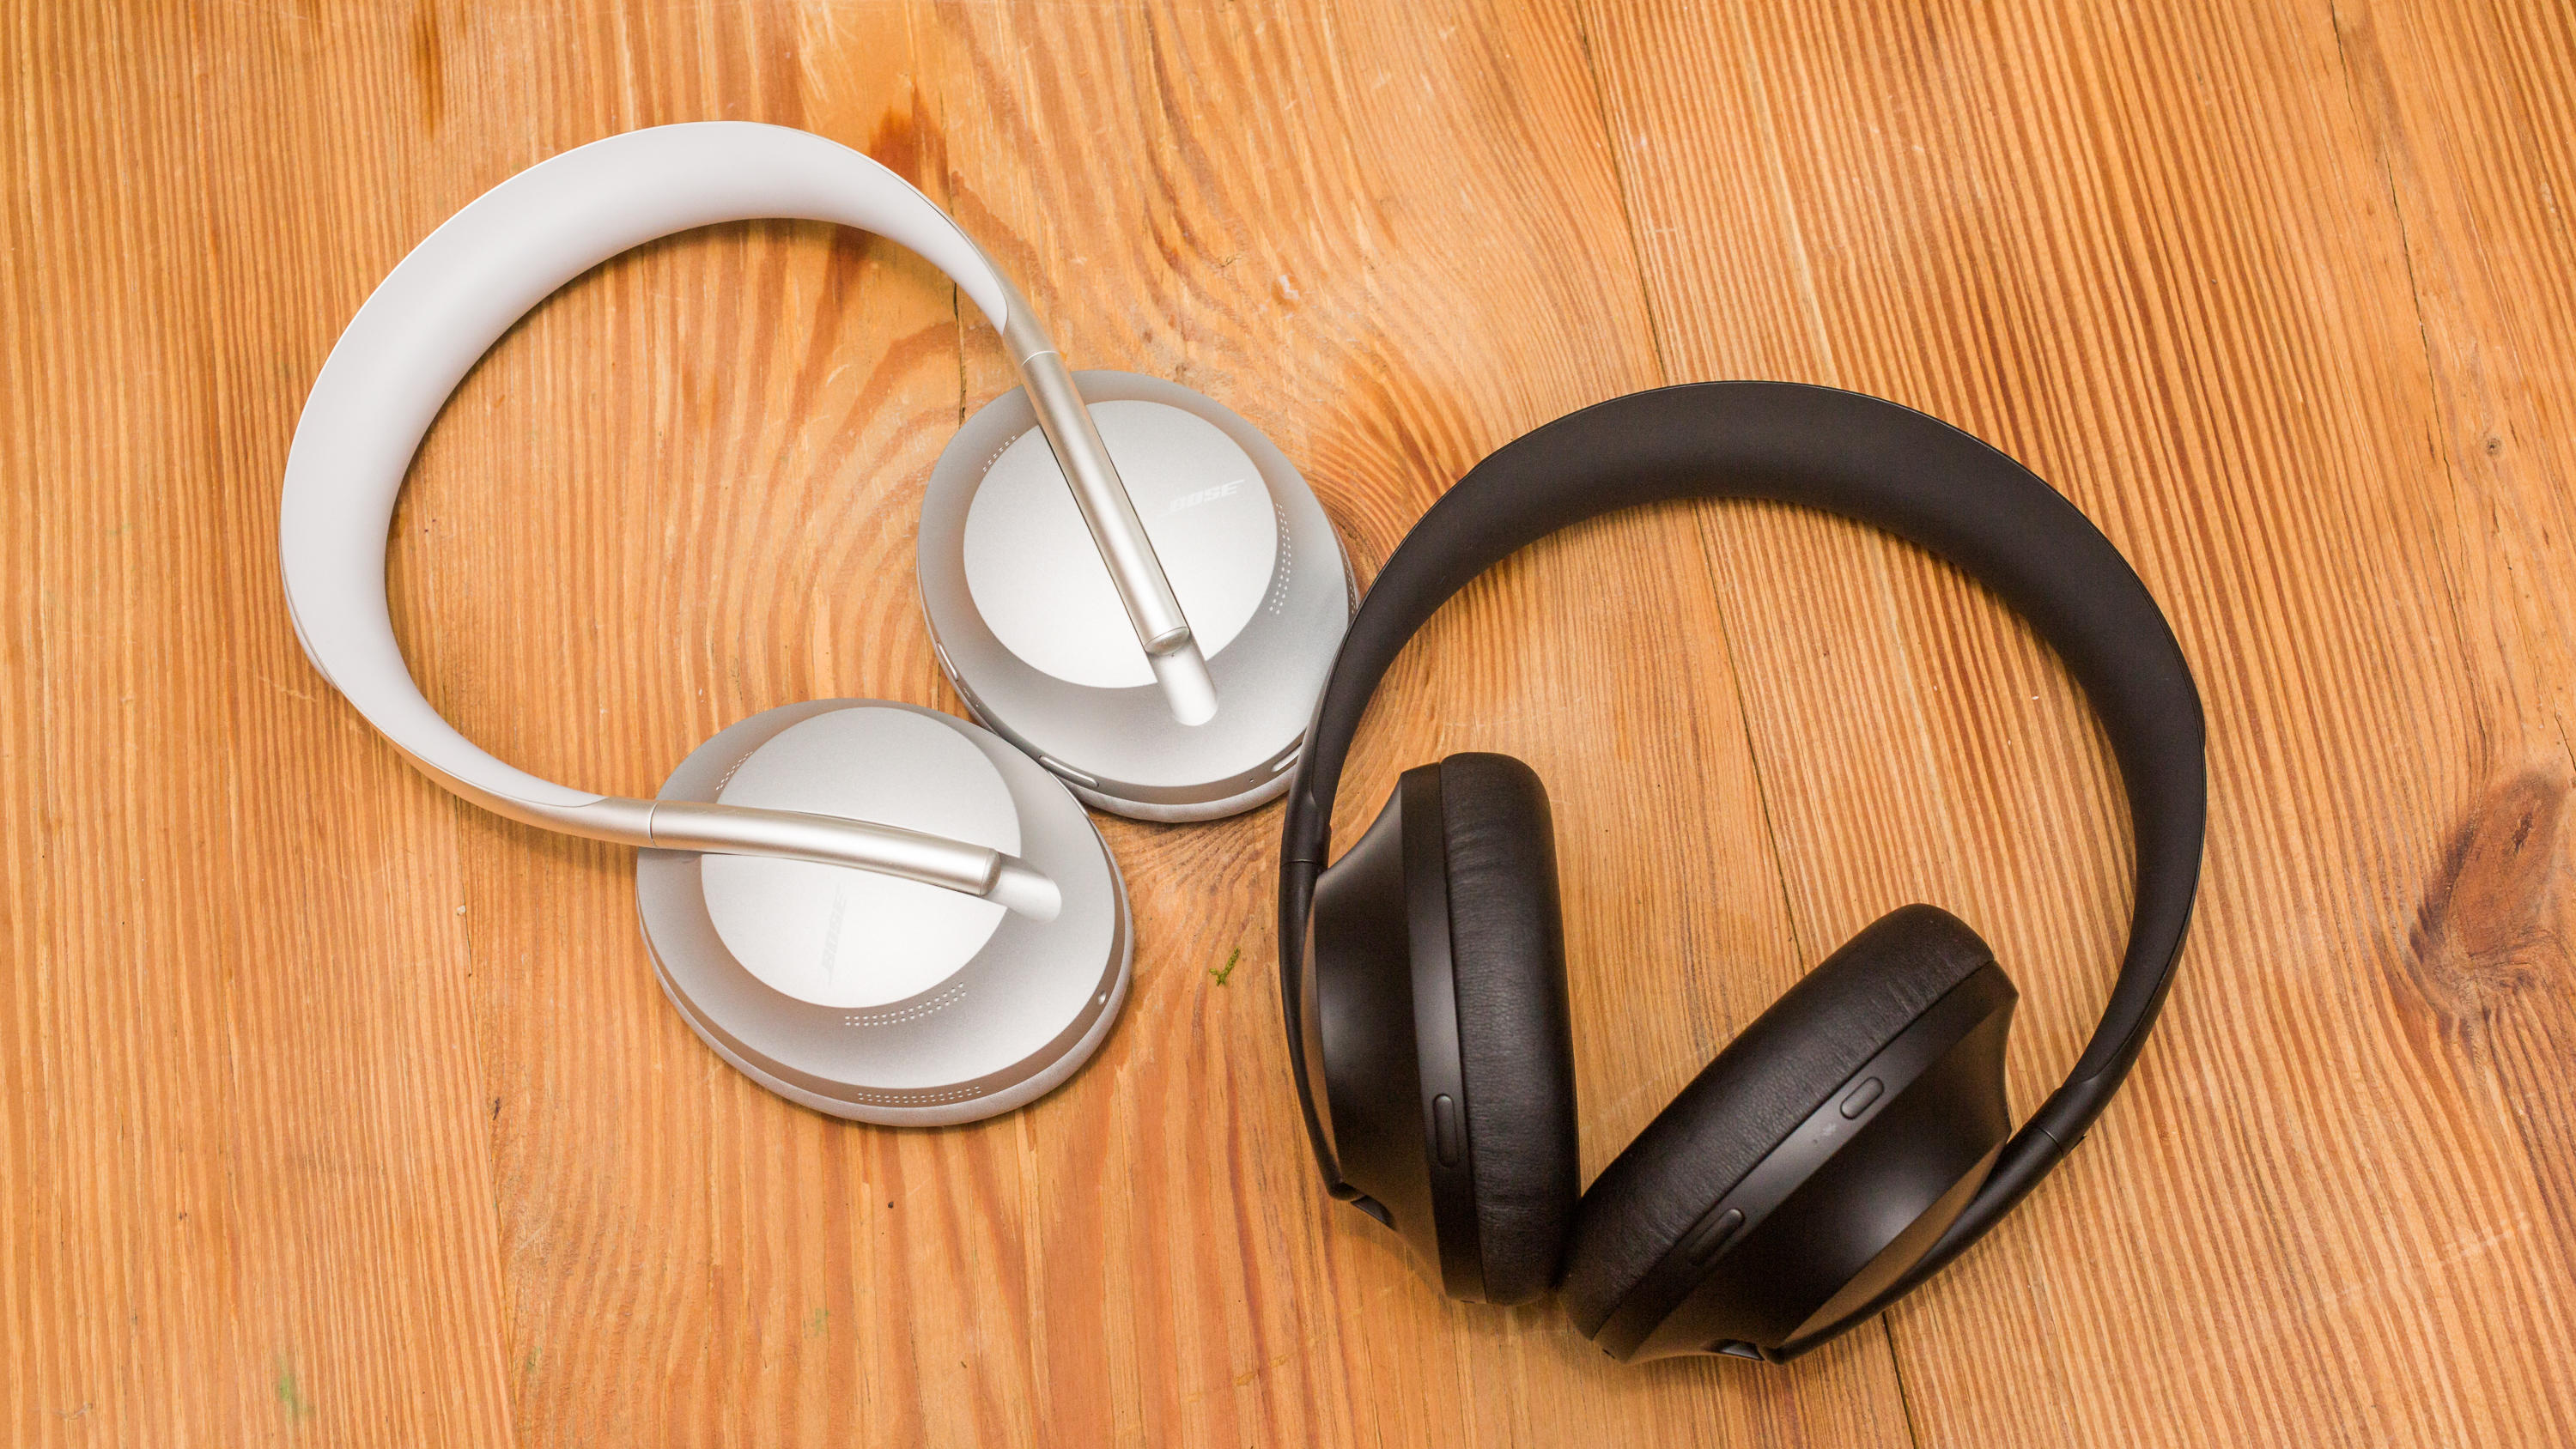 Best wireless earbuds and Bluetooth headphones for making calls